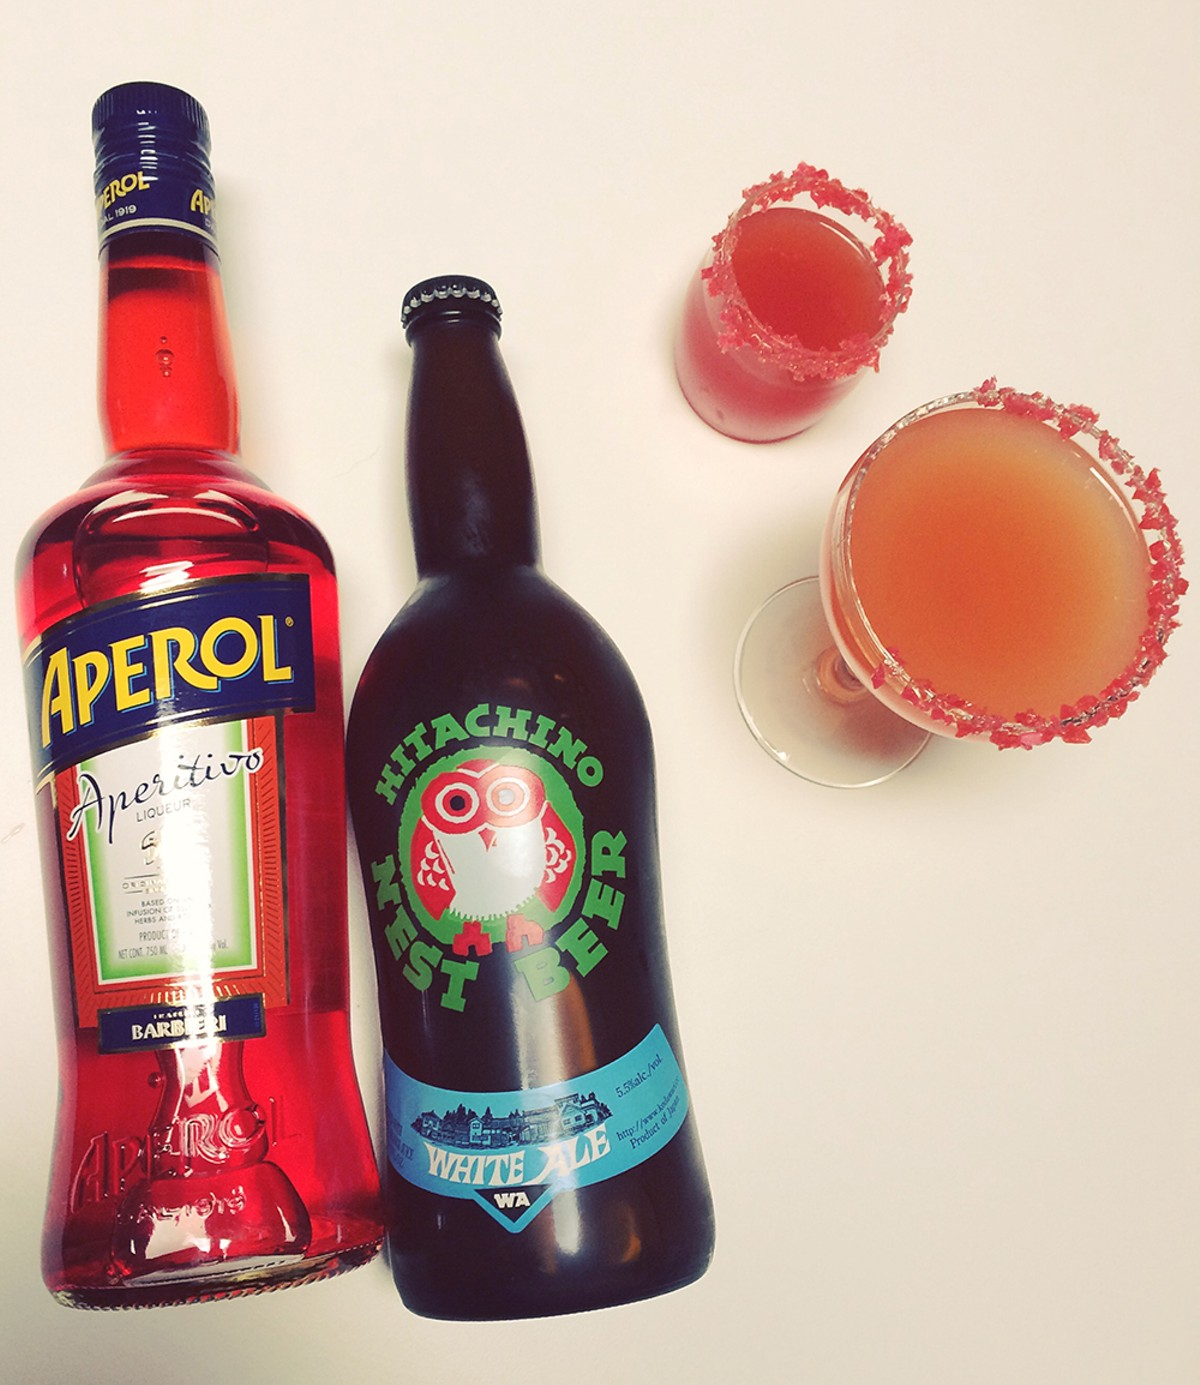 1000w_12-23_poppy_cocktails.jpg